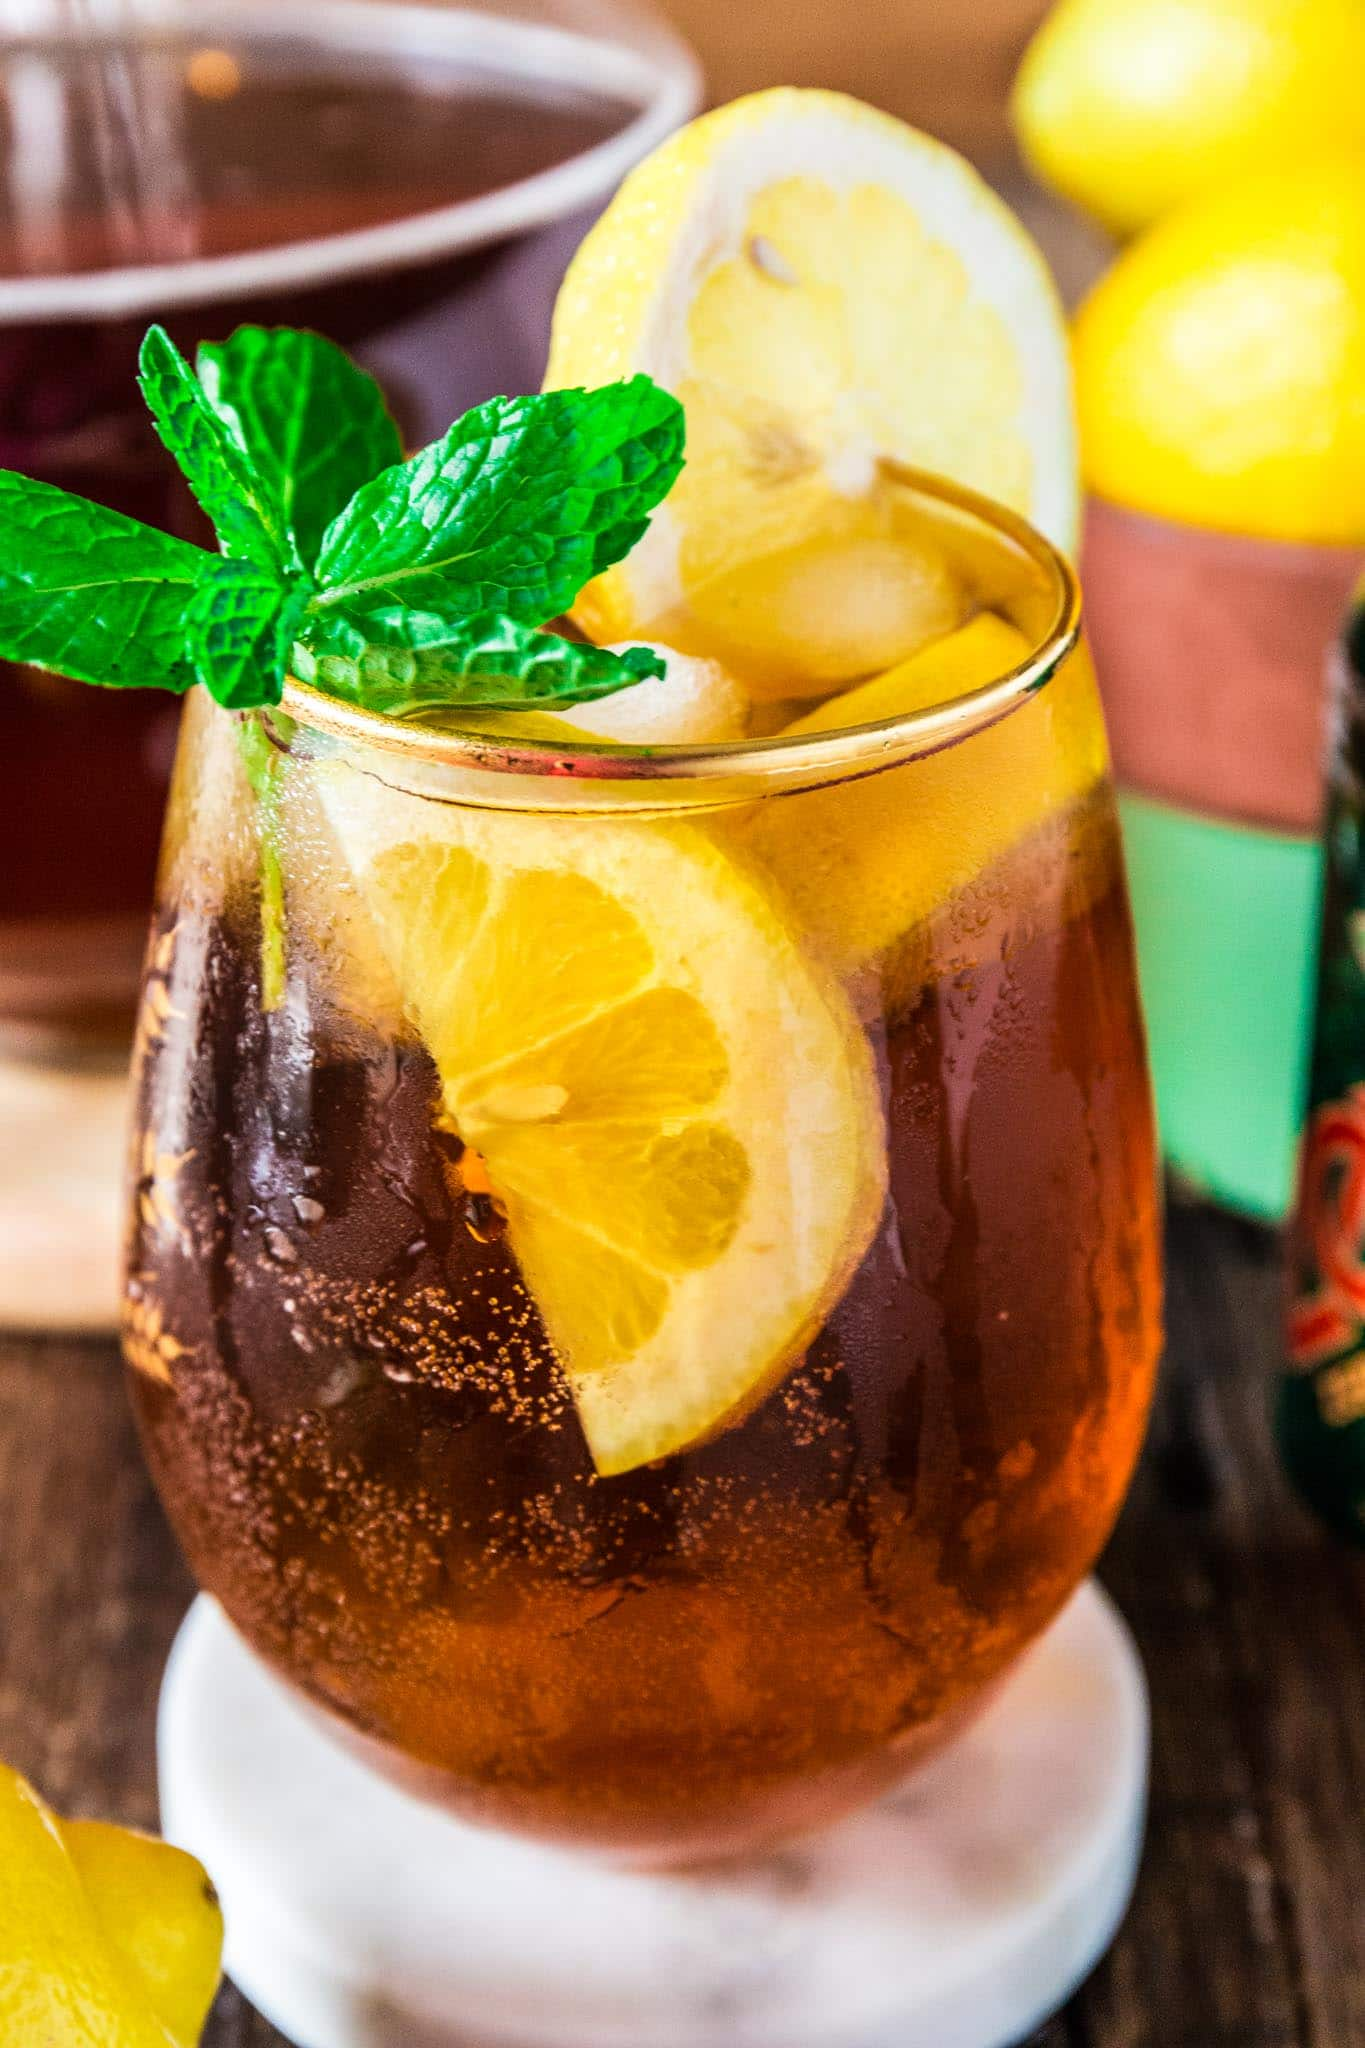 Iced Tea Punch | www.oliviascuisine.com | Refreshing and fizzy, this Iced Tea Punch is exactly what you need on a hot summer day! And the best part? It is sugar free. Meaning you can drink as much as you want without an ounce of guilt! (Recipe by @oliviascuisine.)